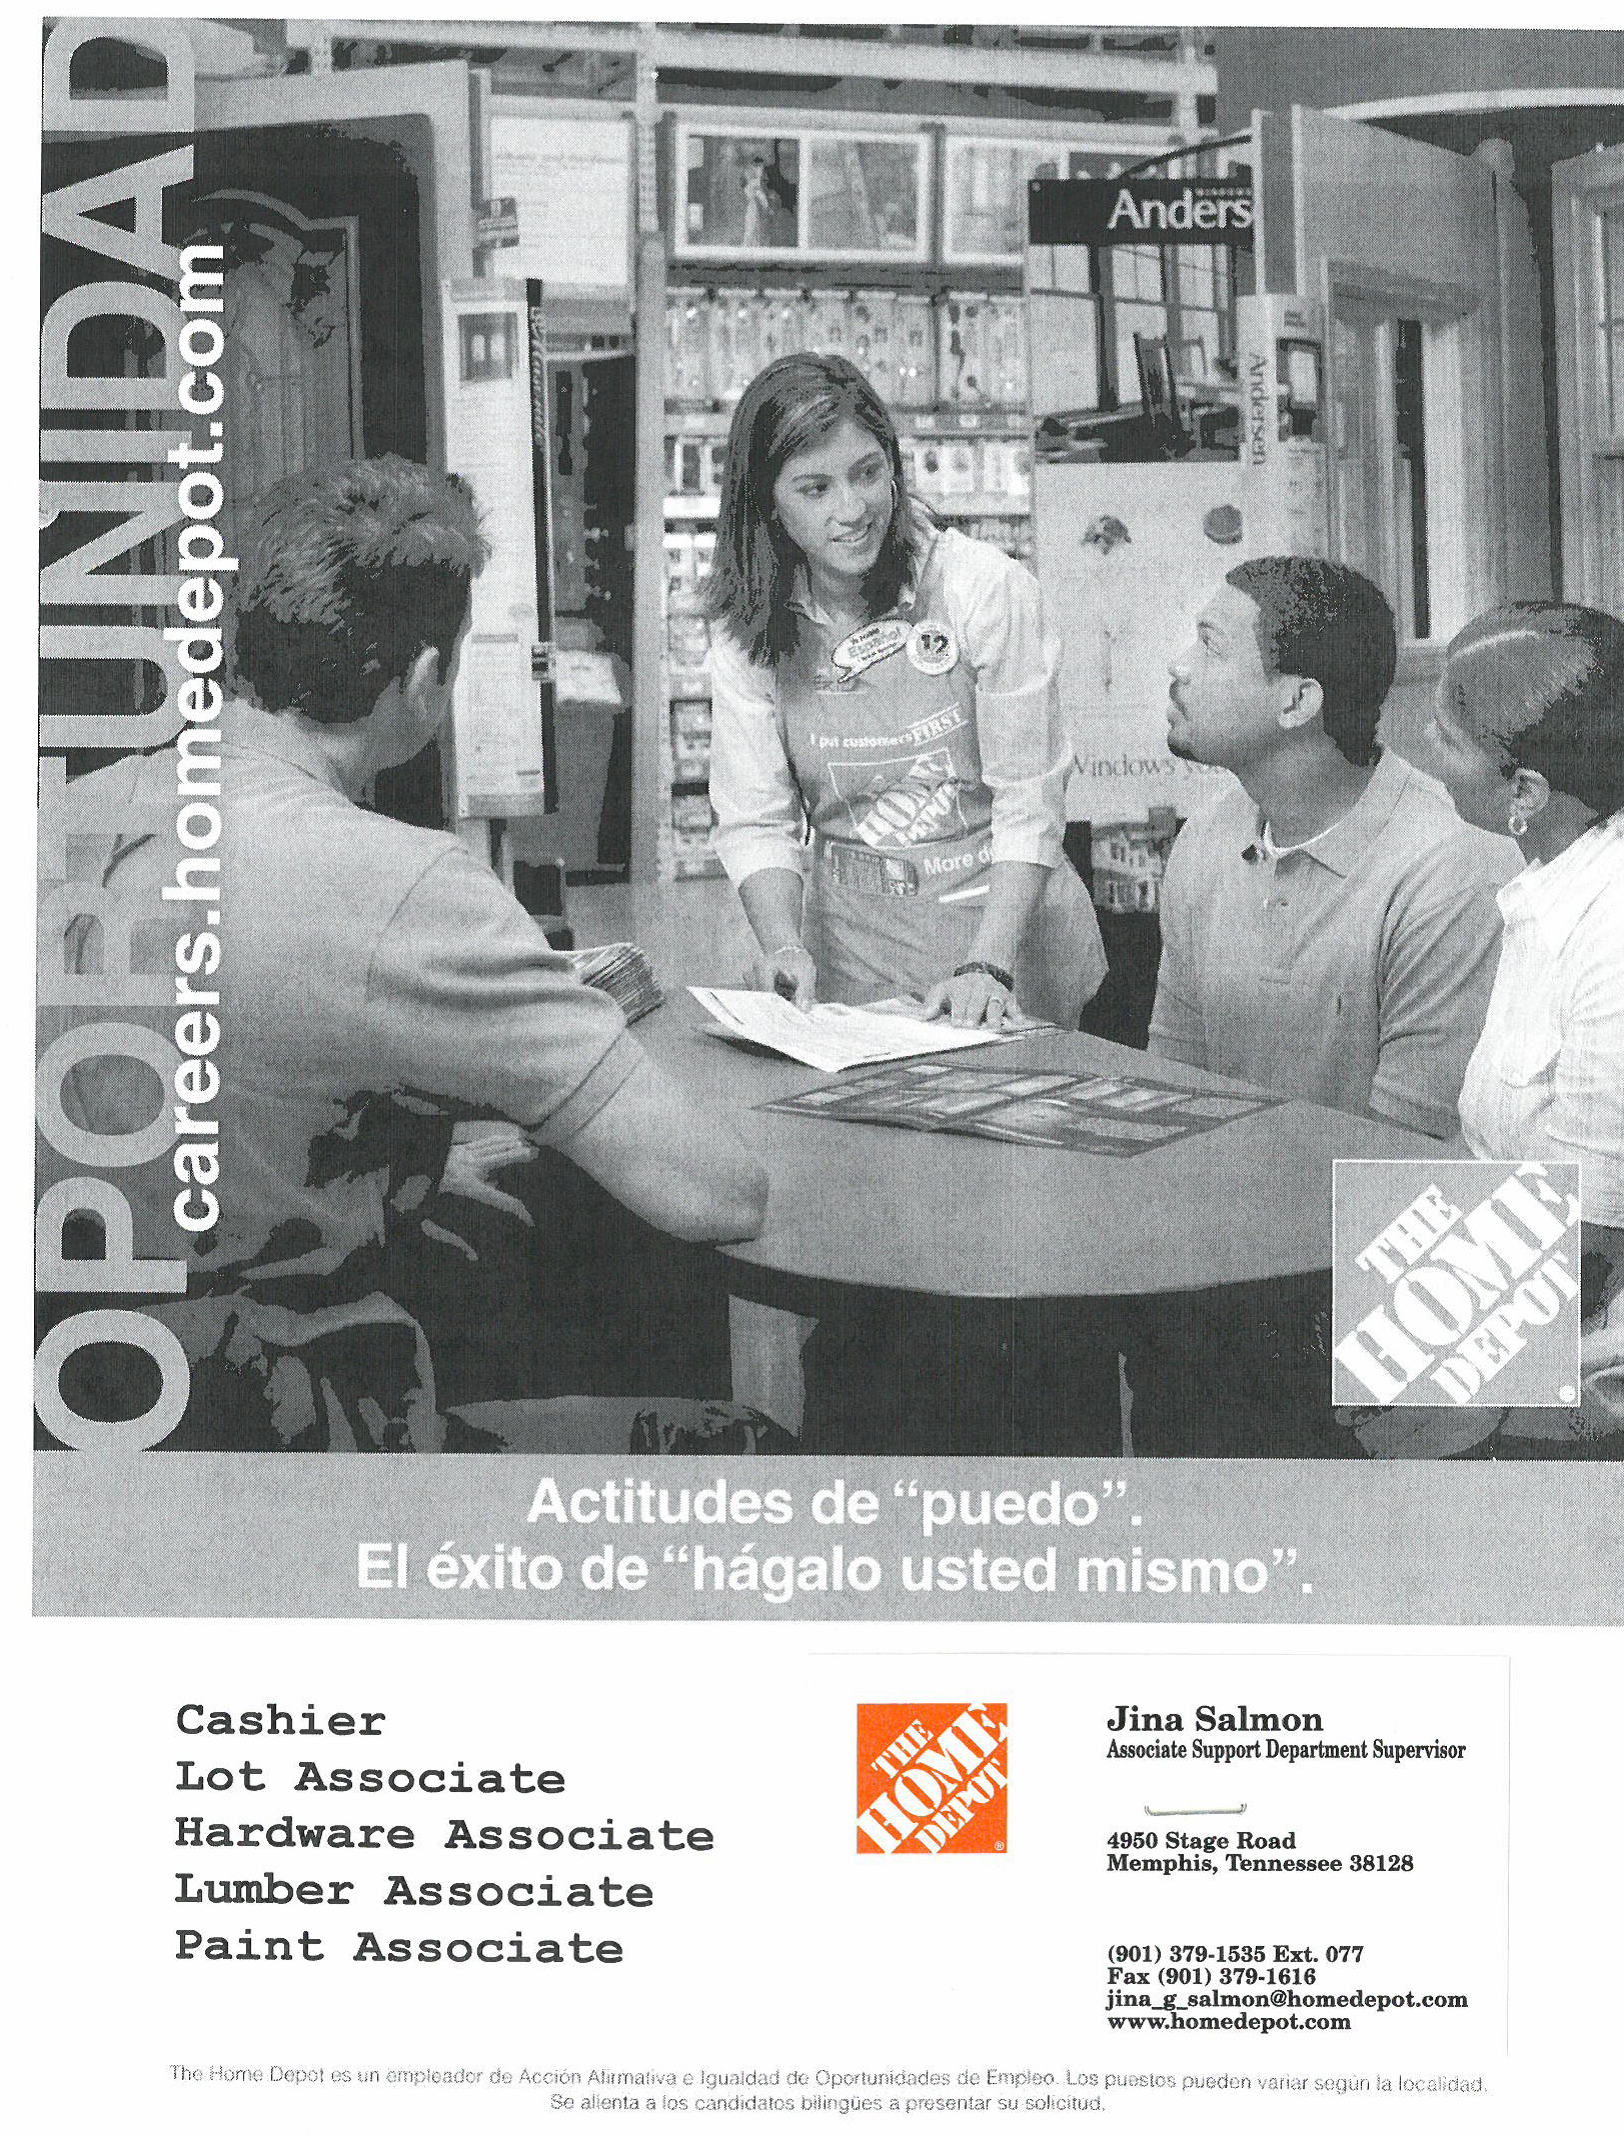 Fine Home Depot Stage Rd Job Career News From The Memphis Download Free Architecture Designs Scobabritishbridgeorg